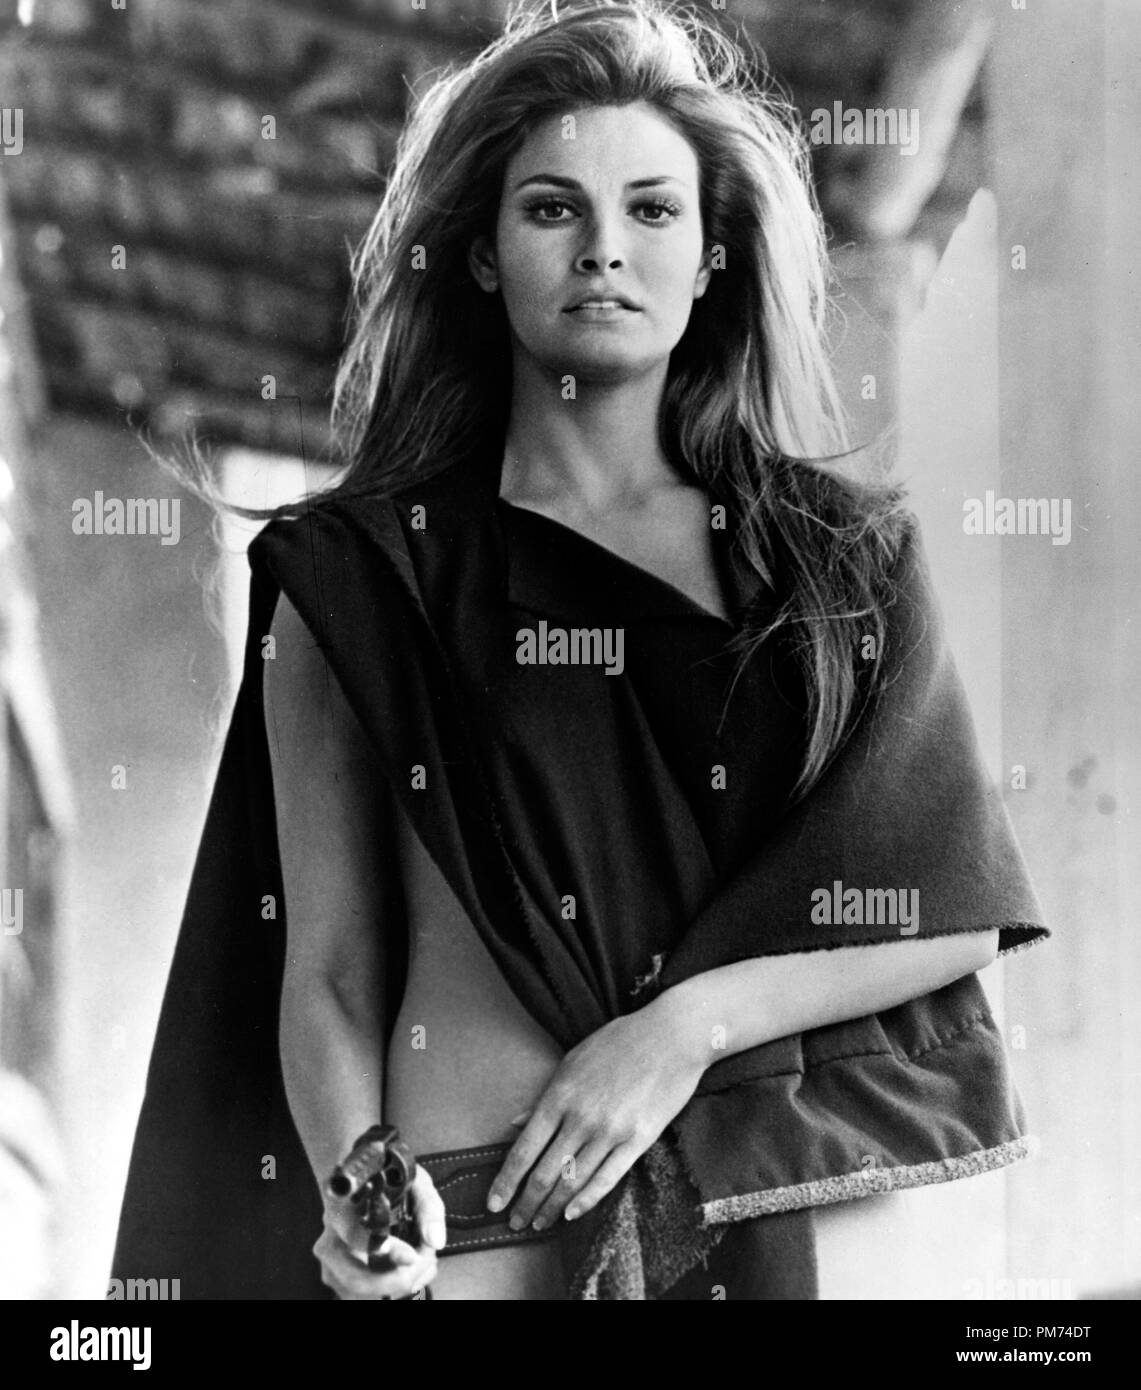 pictures Raquel welch see through